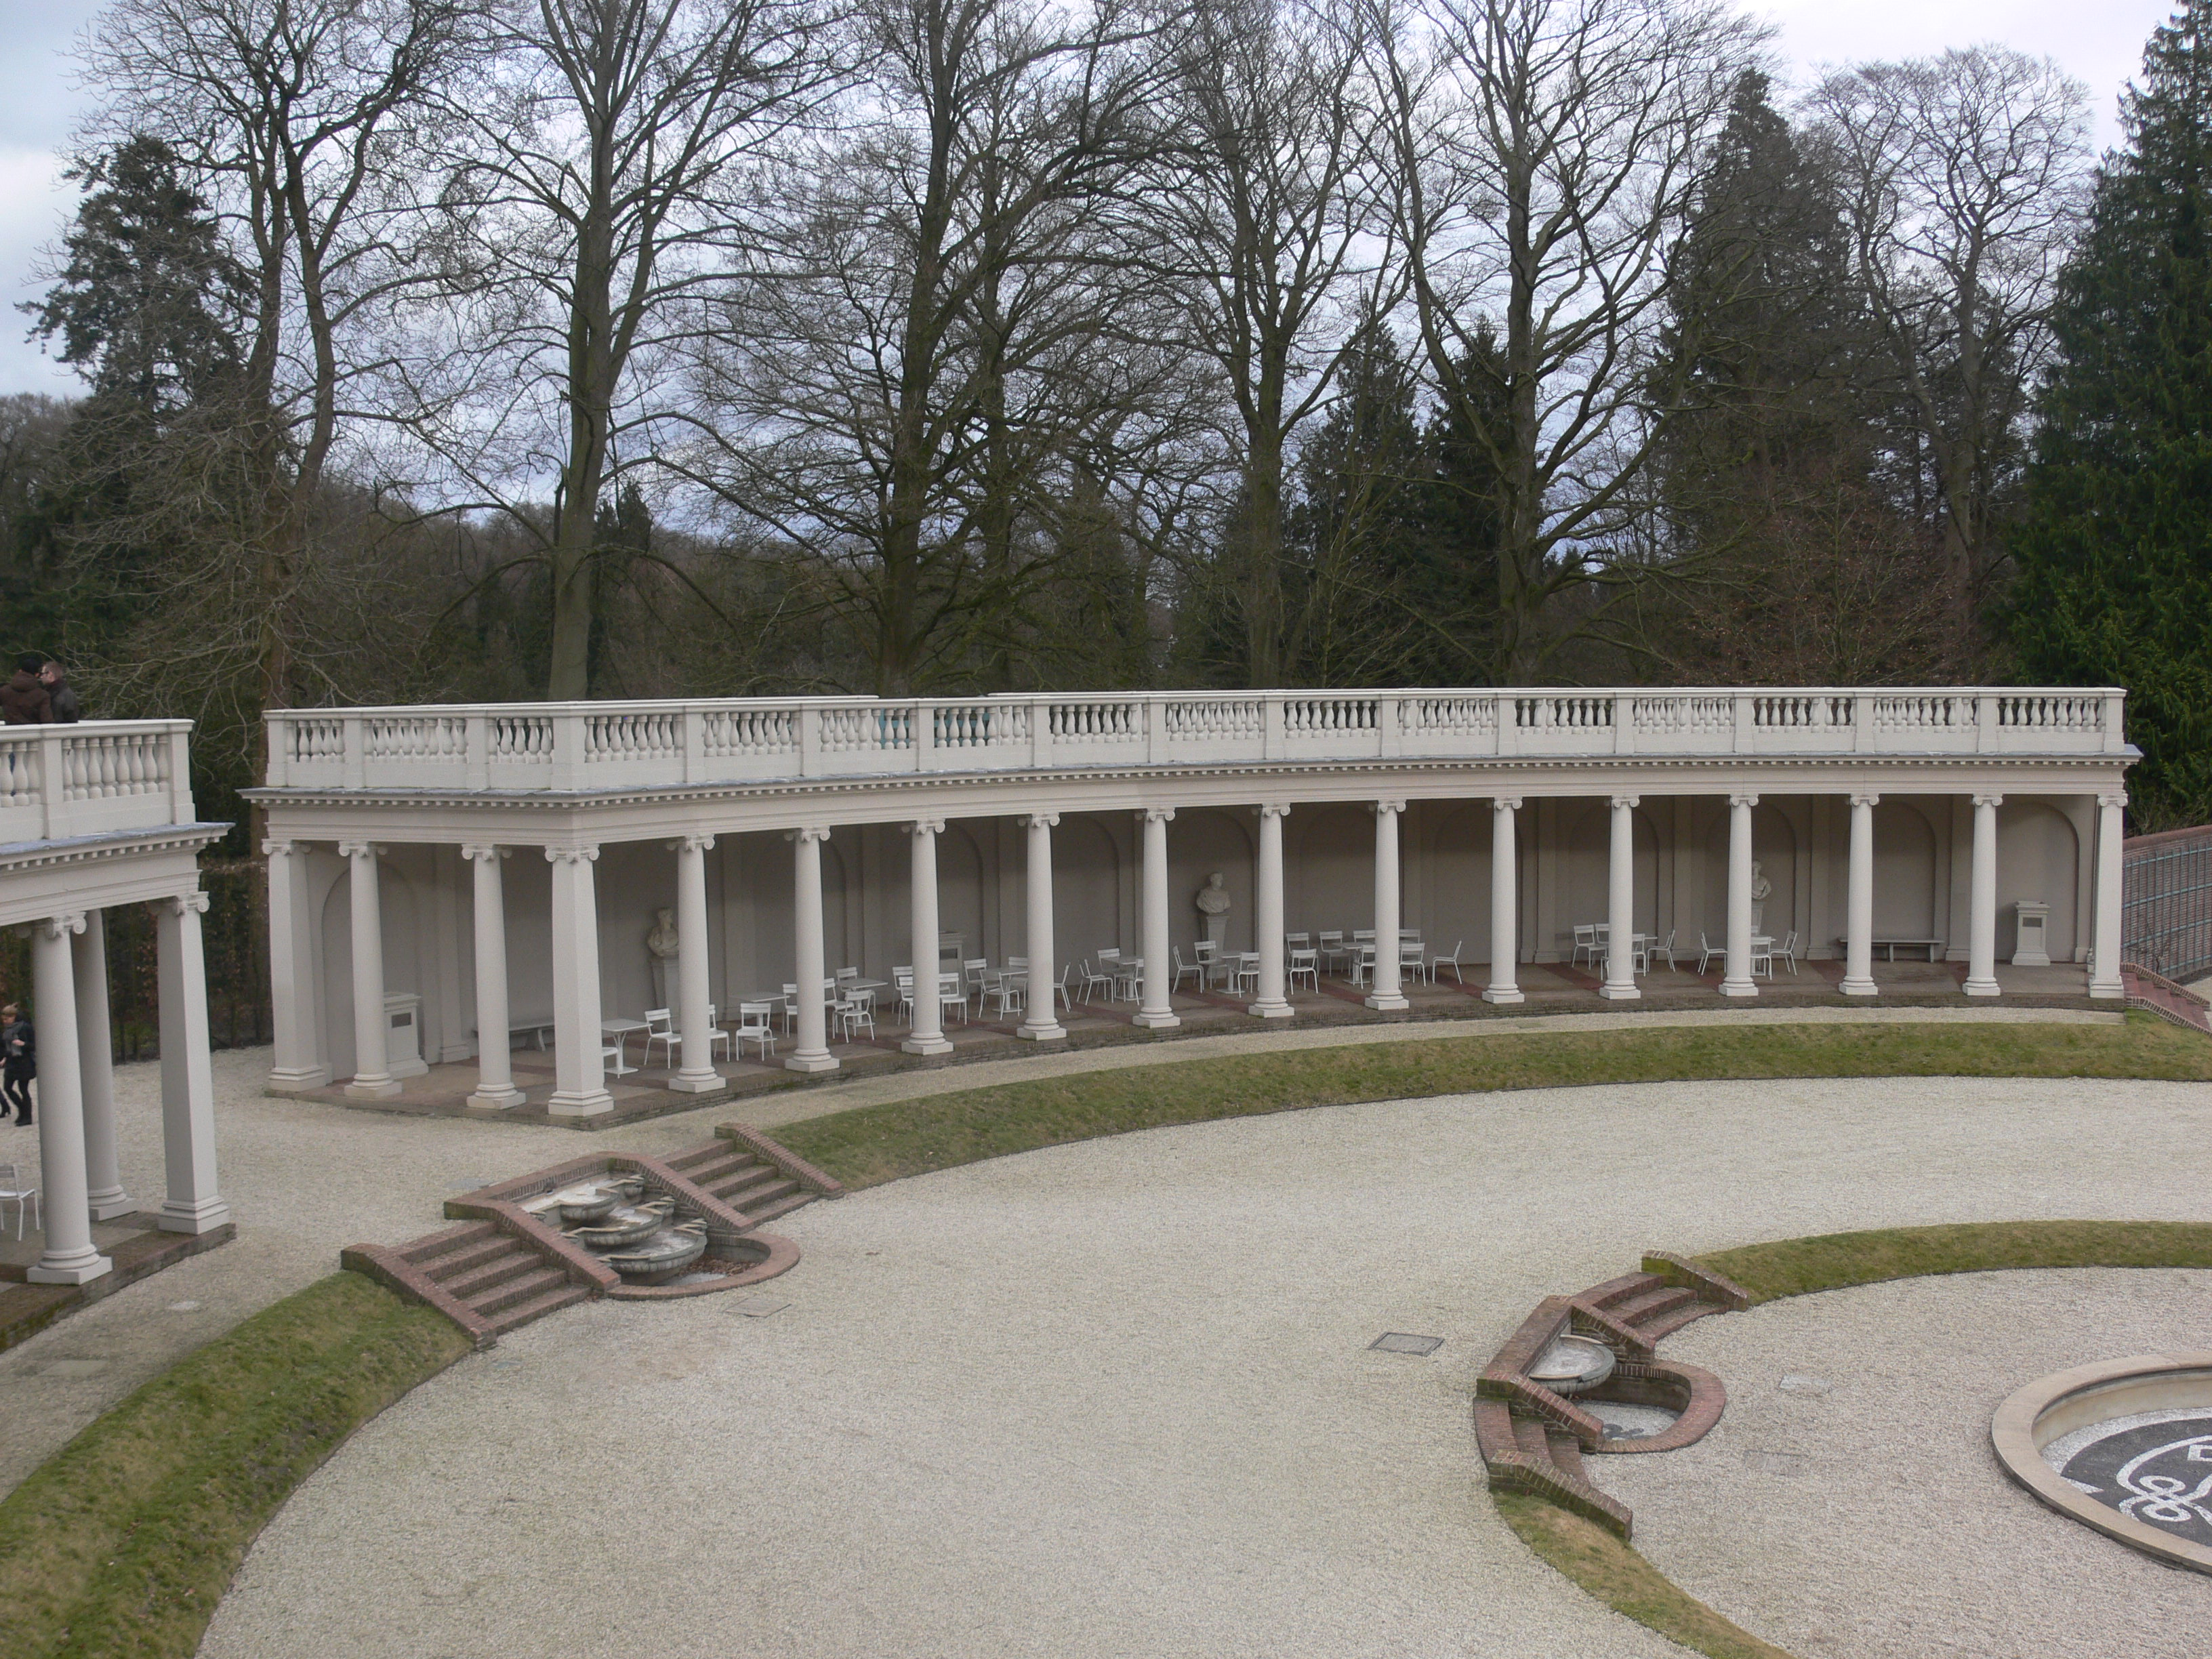 FileHet Loo Palace columns and gardenJPG Wikimedia Commons